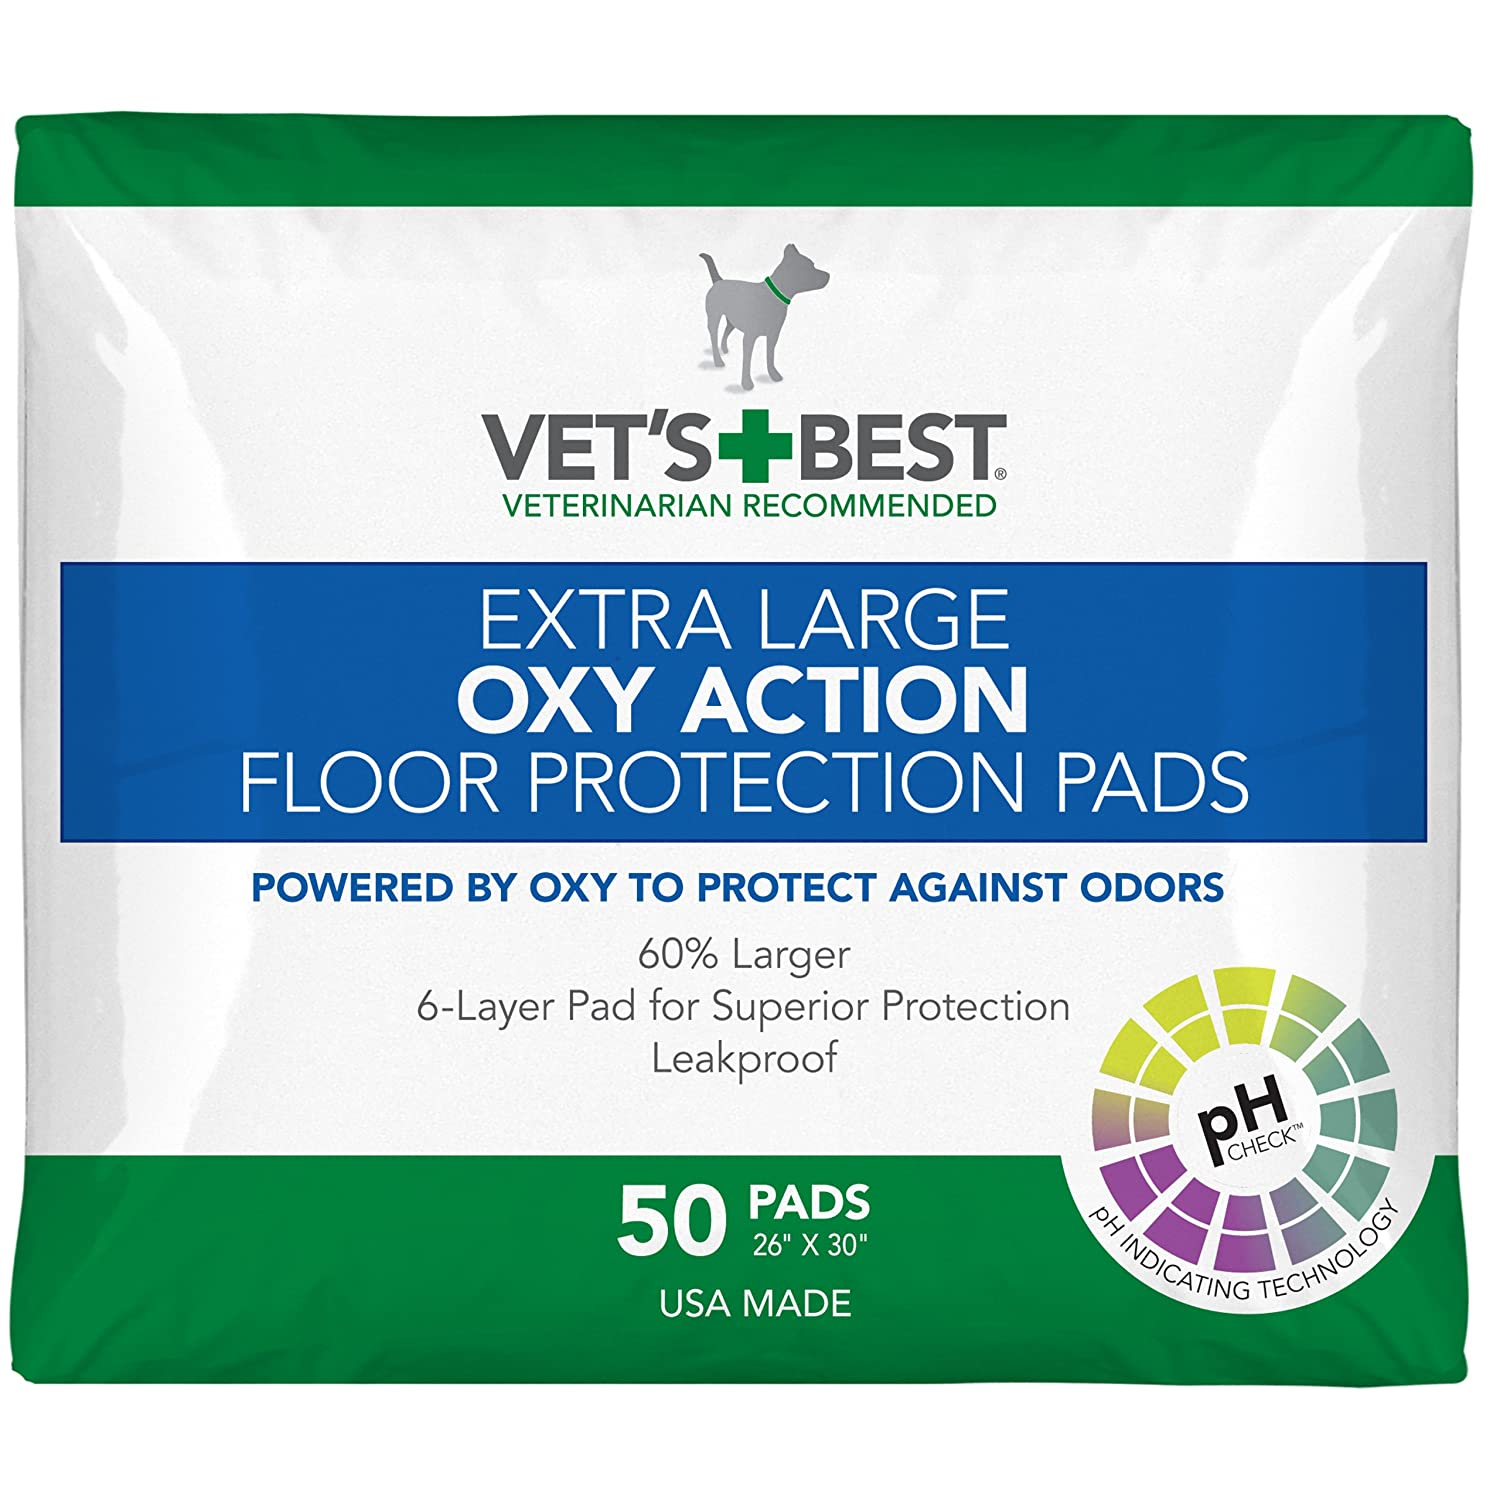 Vet's Best 50 Count Oxy Action Floor Predection Dog Pads, X-Large